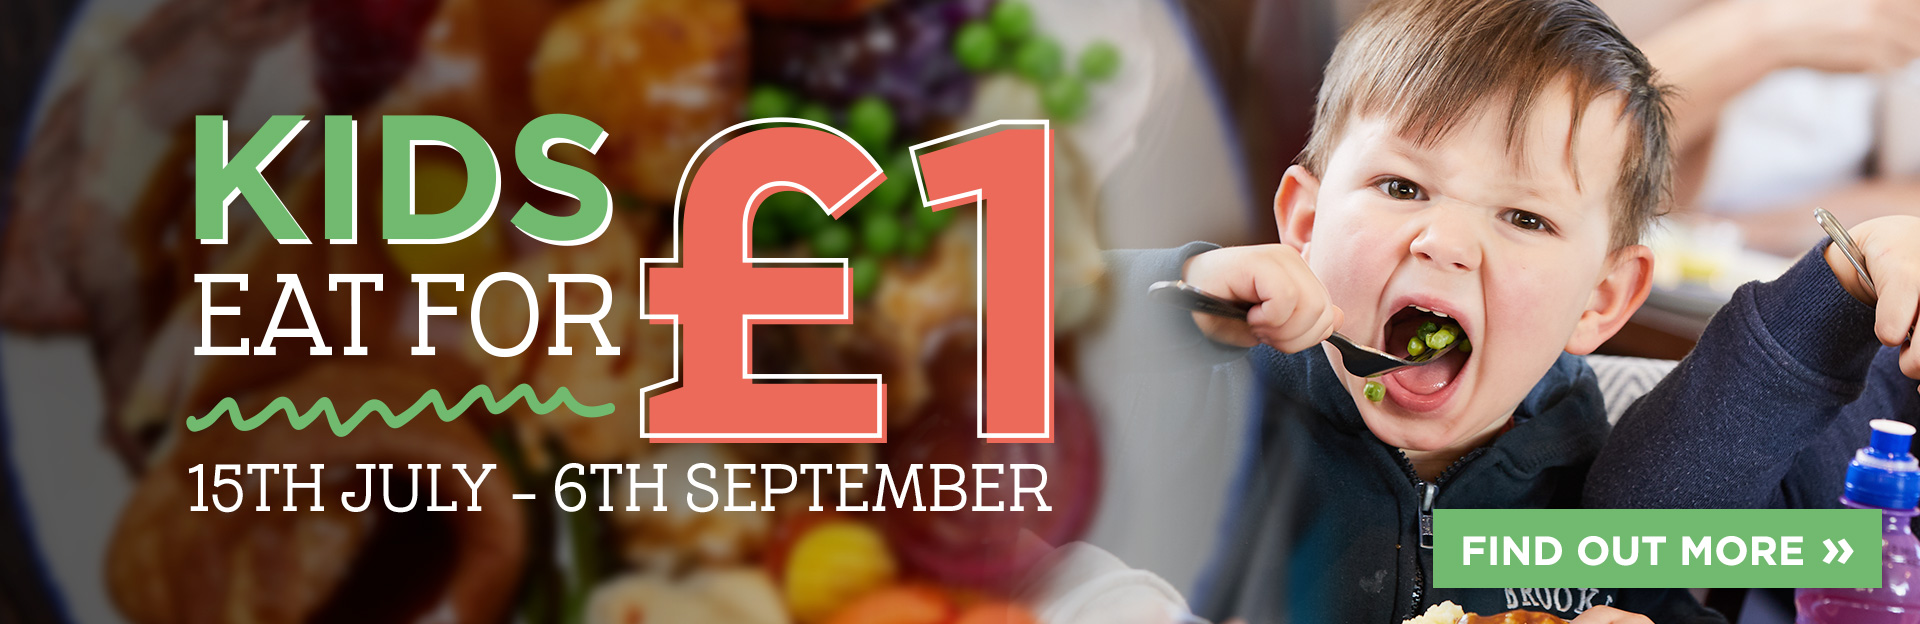 Kids Eat for £1 at The Lord Louis